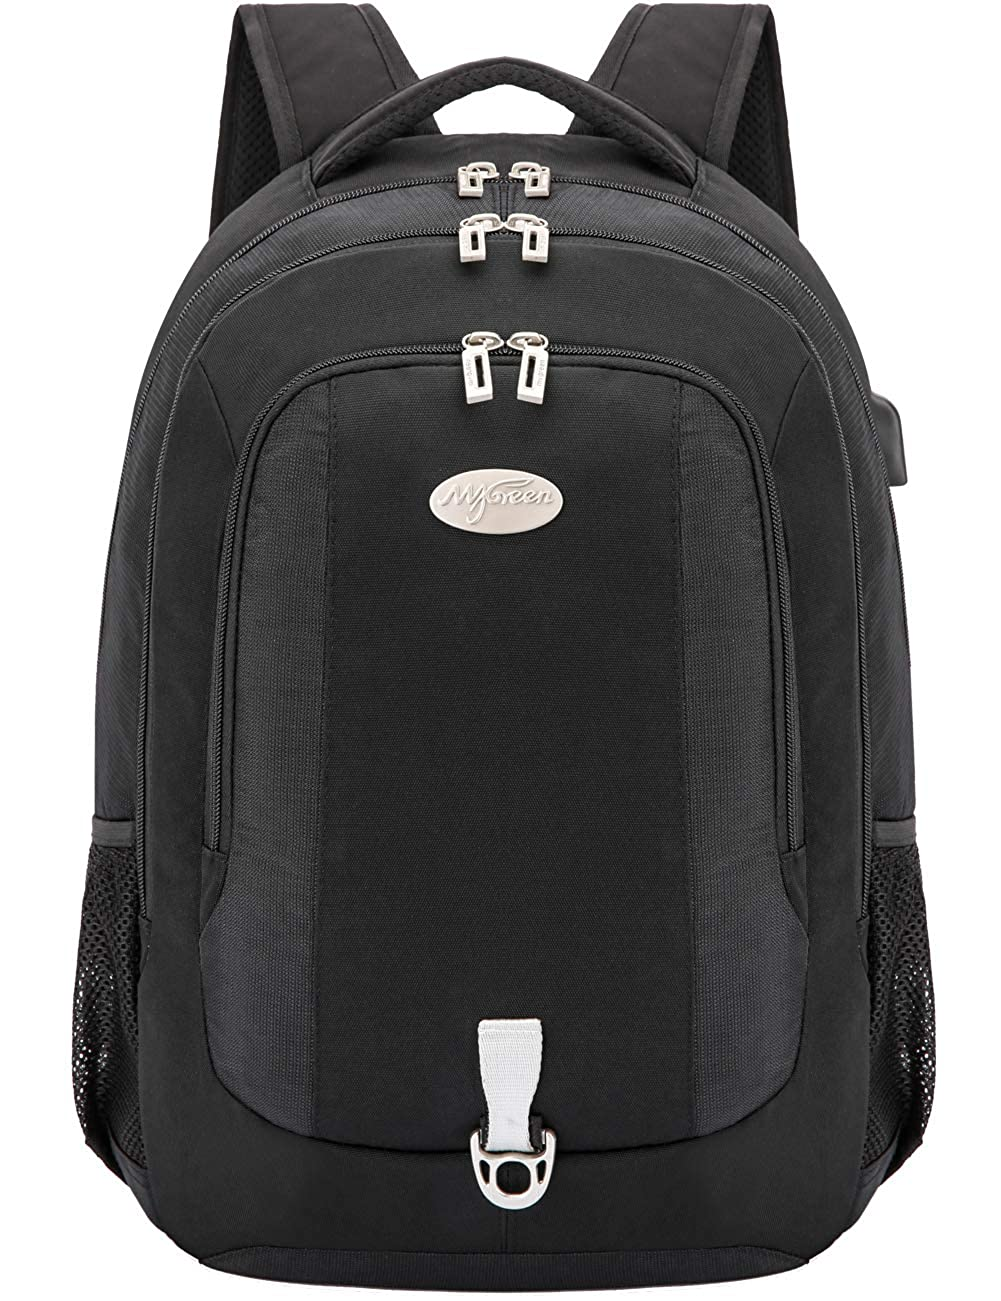 Mygreen Travel Gear Professional Business College Laptop Backpack – 15-17